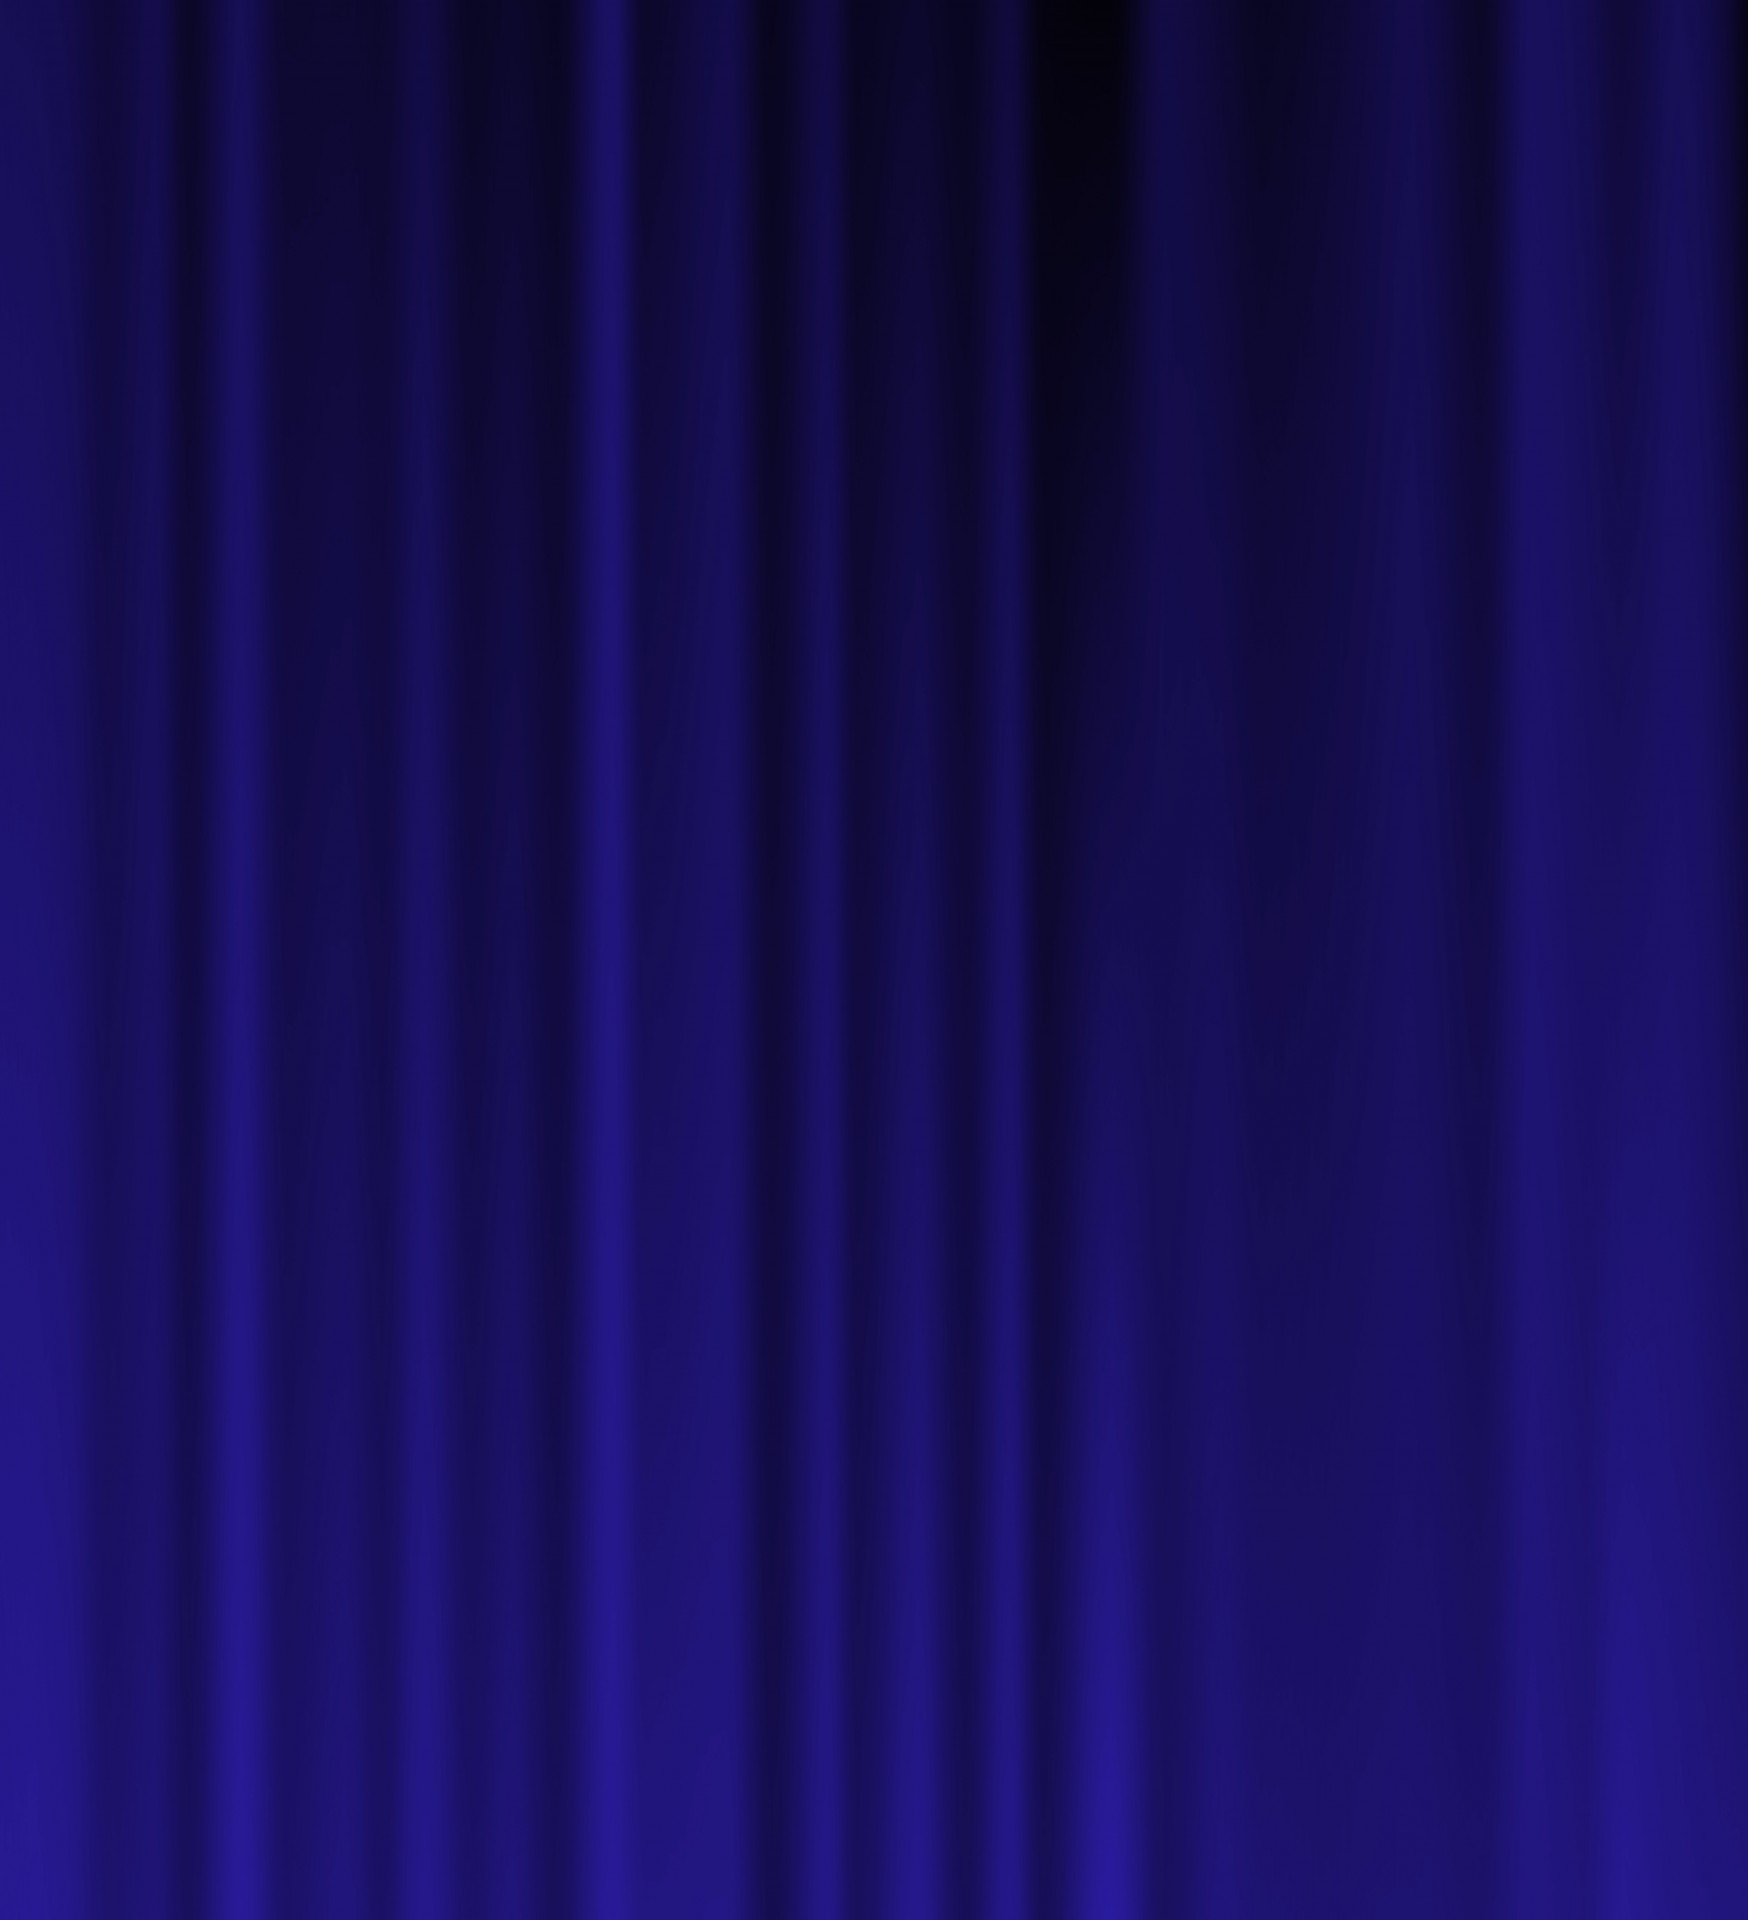 Blue Velvet Curtains Background Free Stock Photo - Public Domain ...